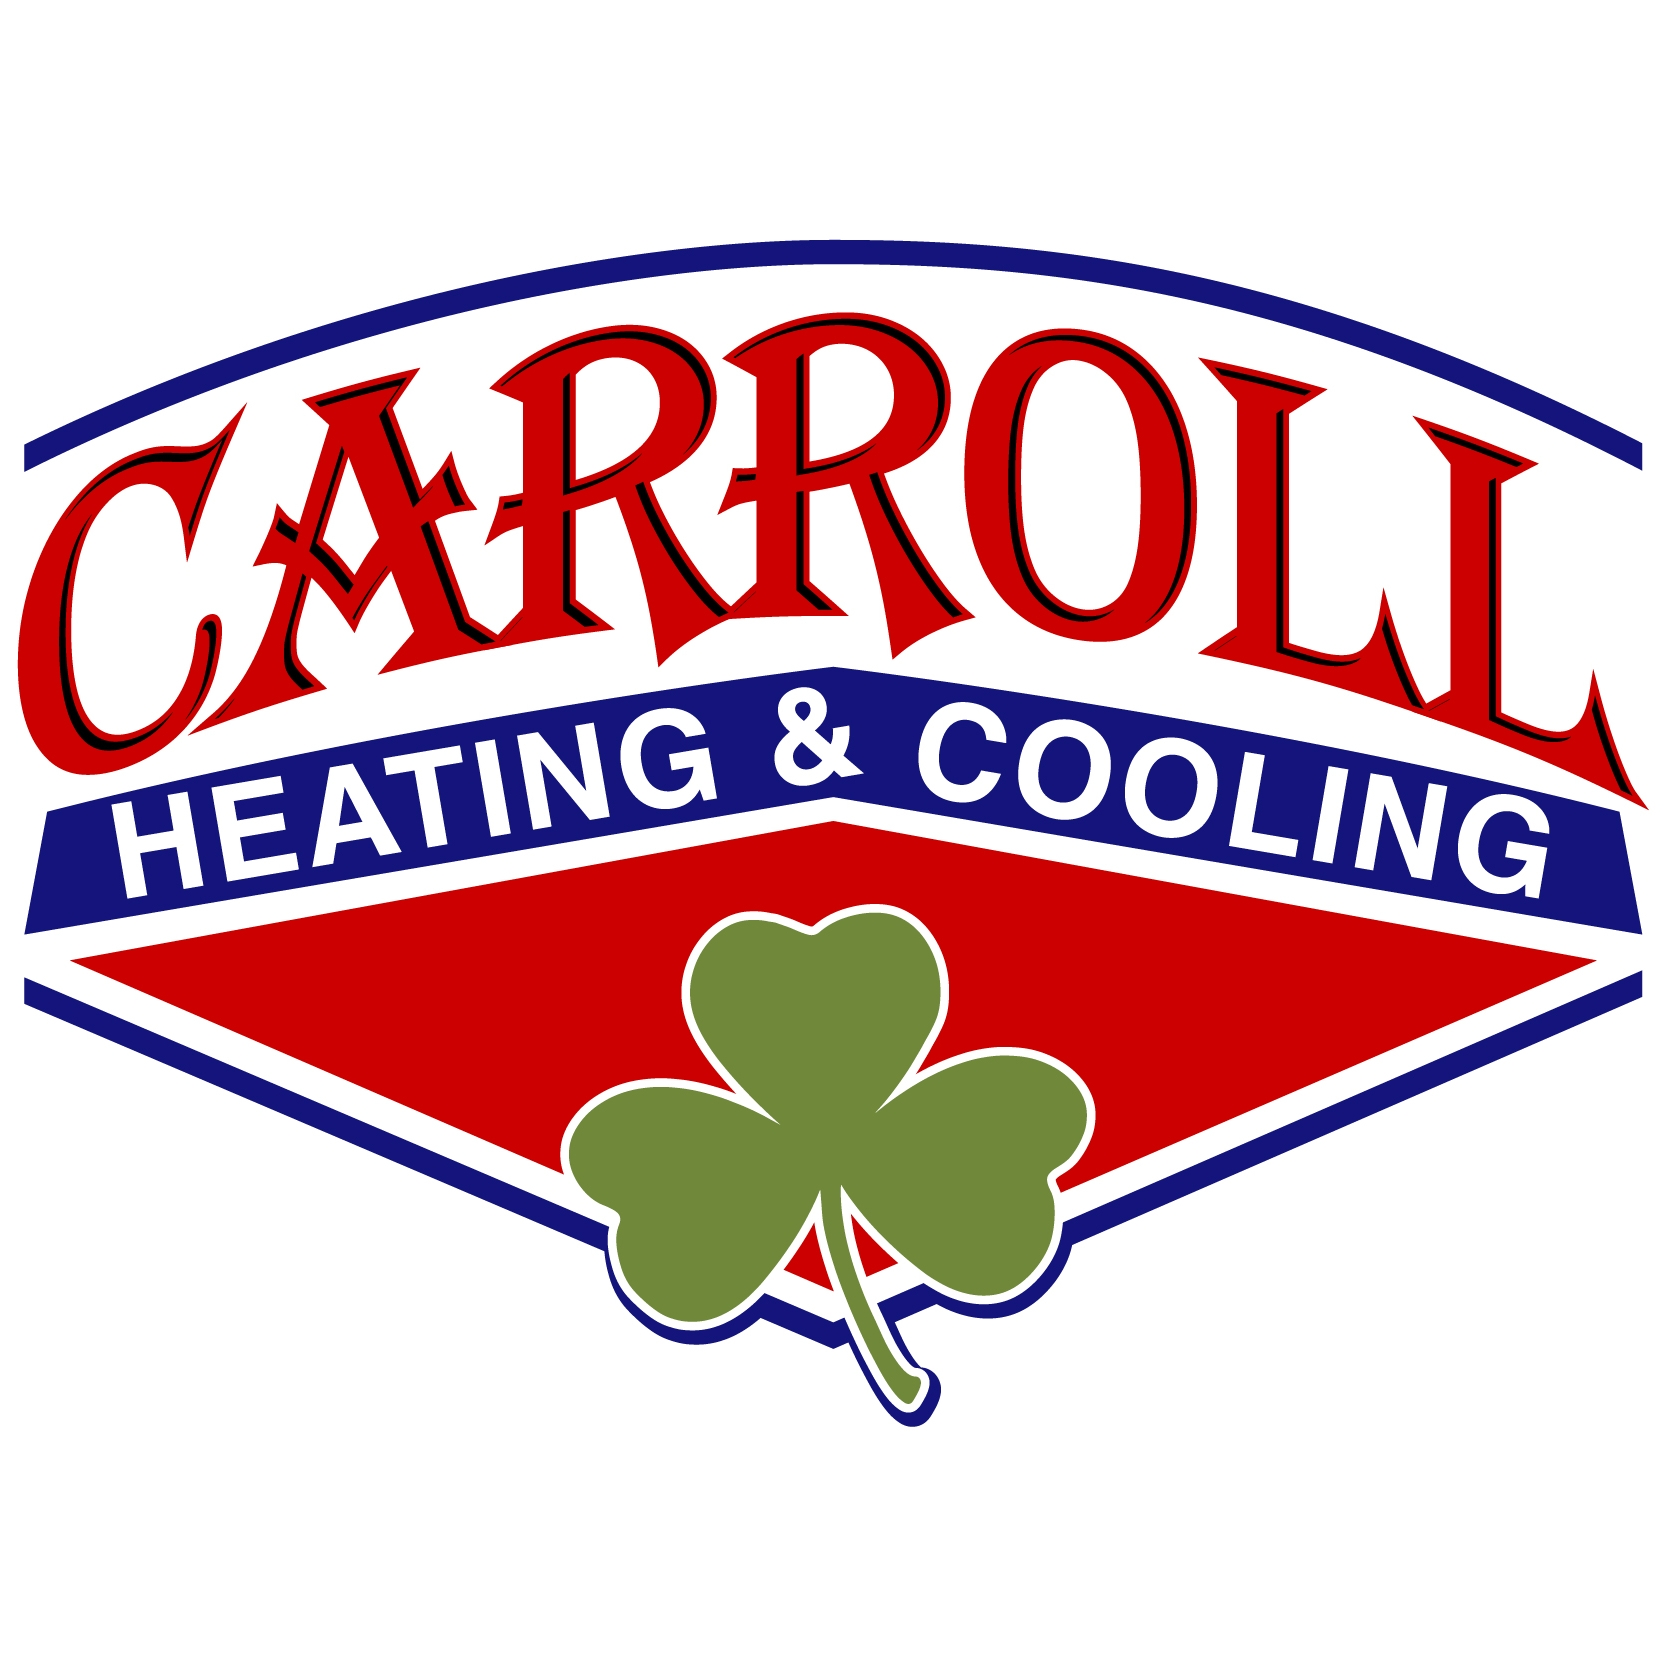 John Carroll HEATING & COOLING logo